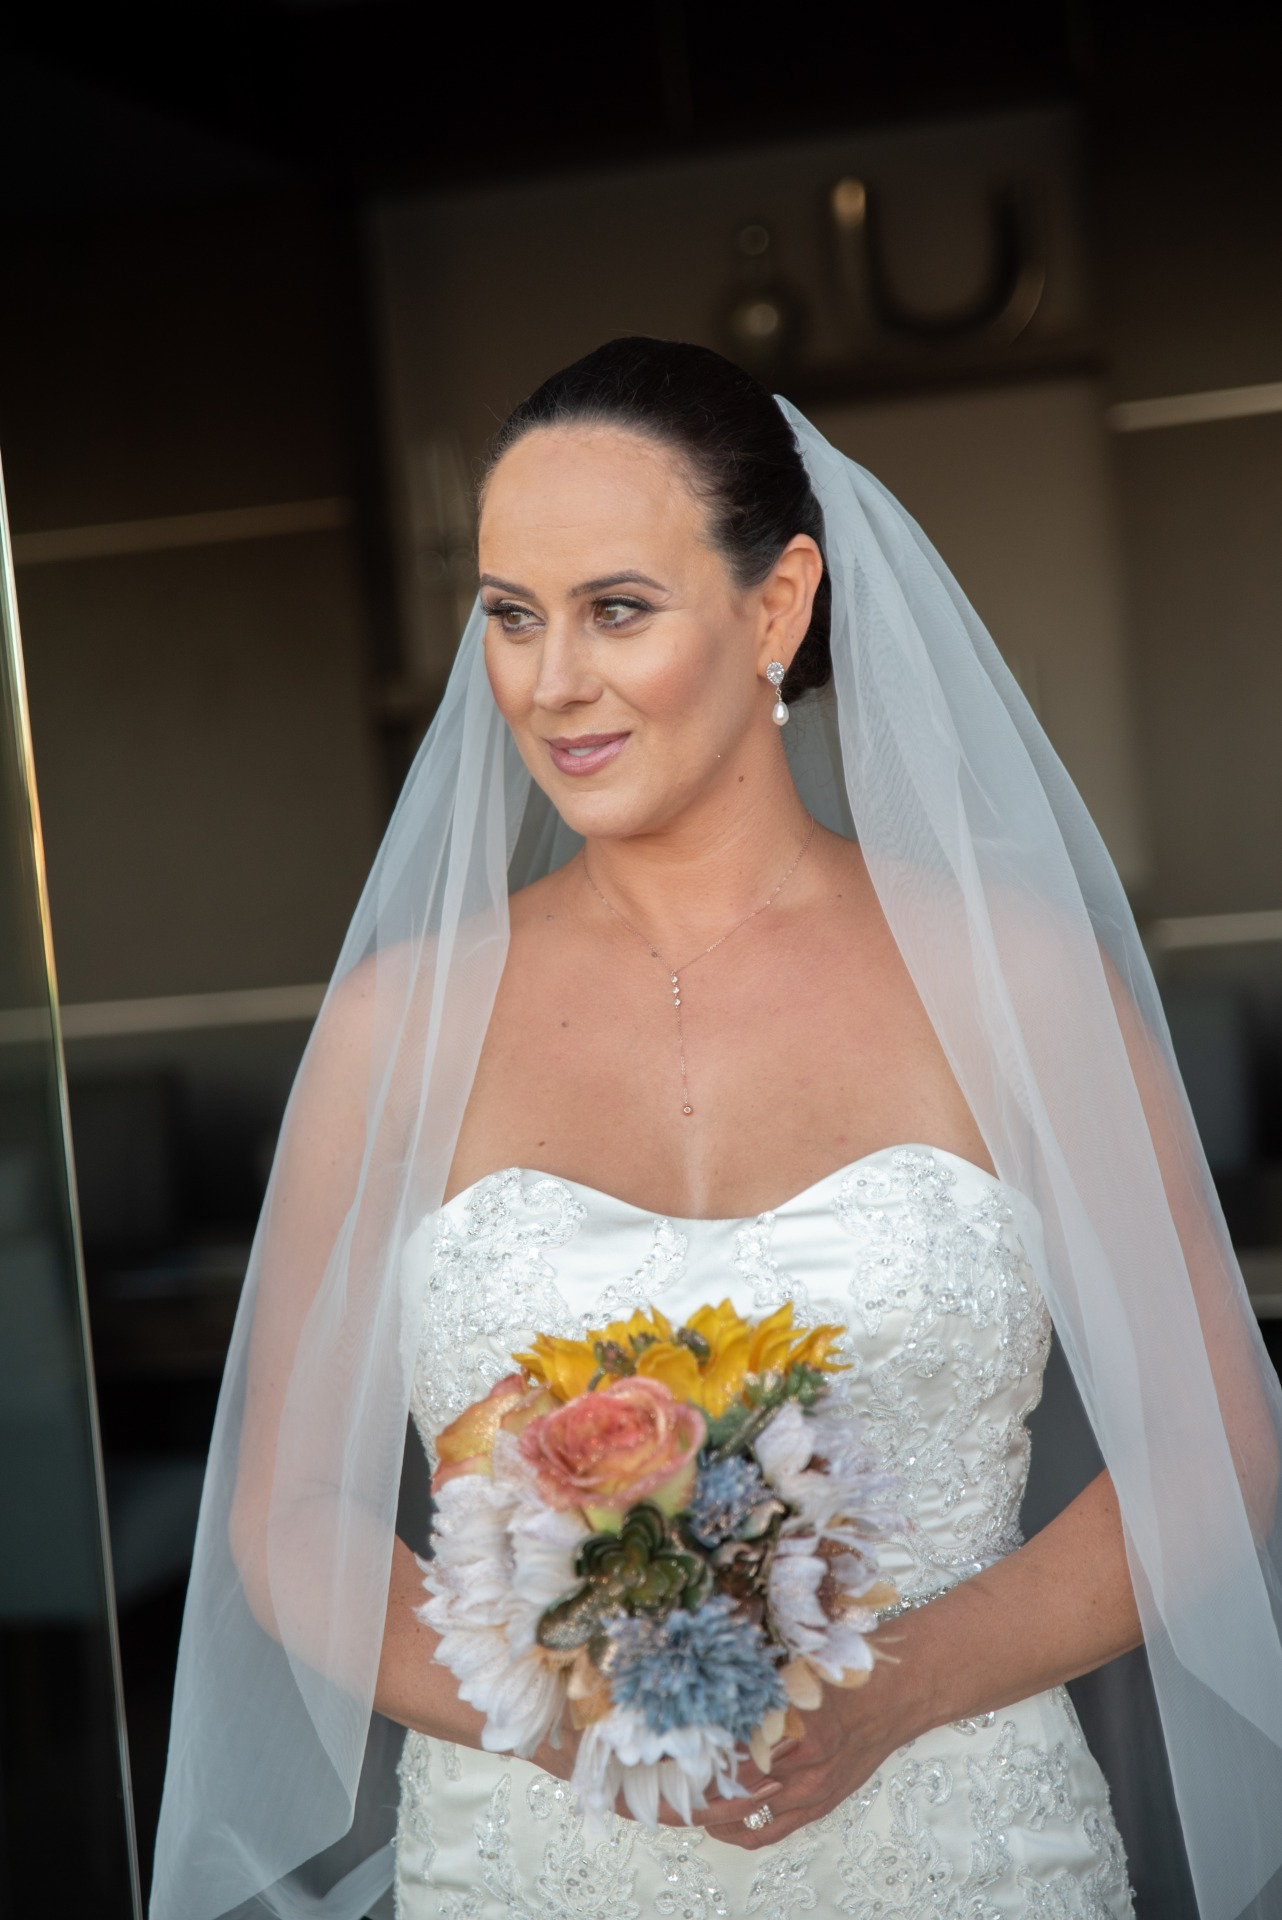 Beautiful Las Vegas bride wearing wedding dress with sweetheart neckline and holding bouquet with orange roses.